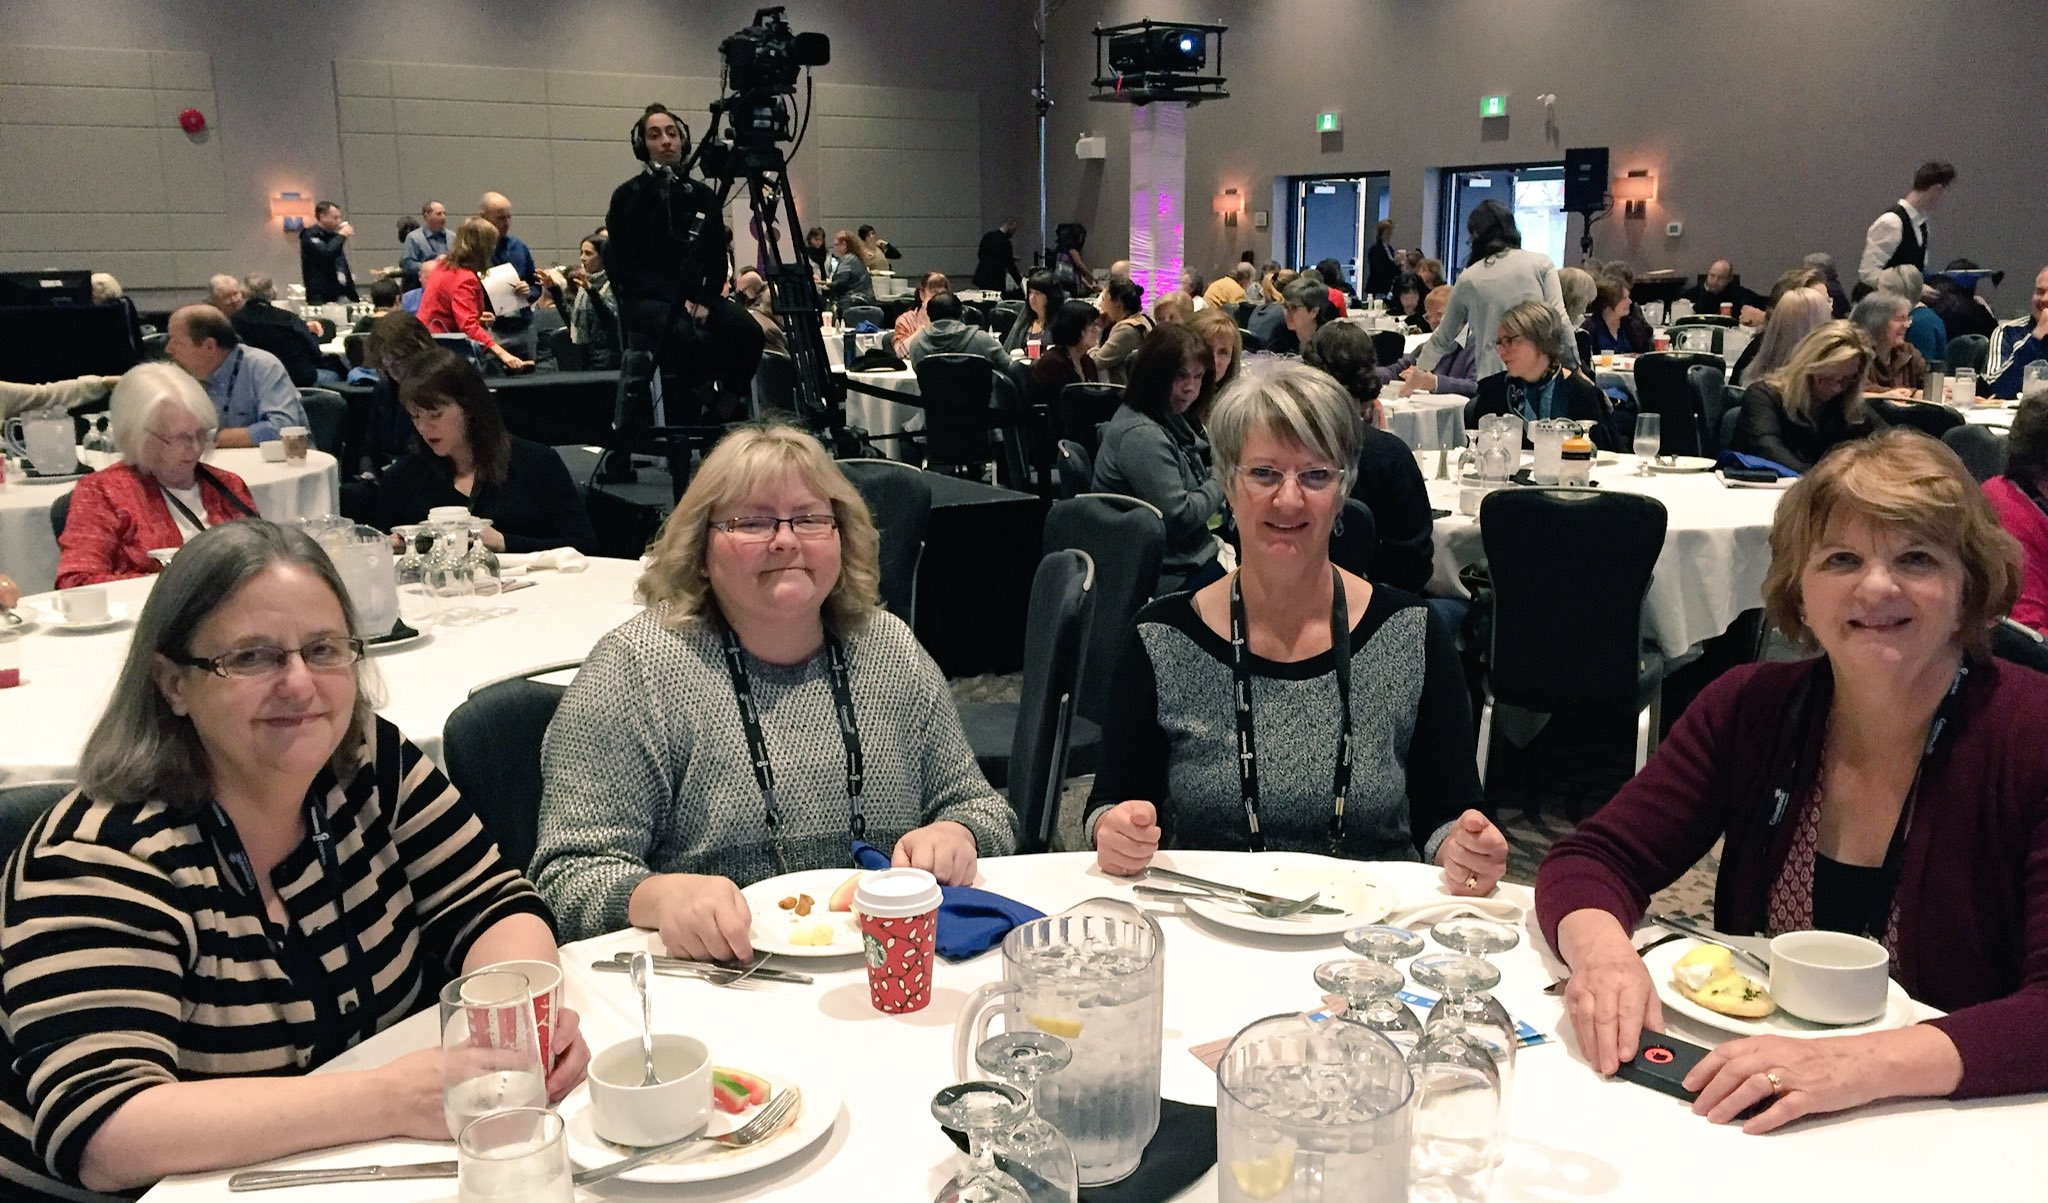 Meet Susan, Roxanne, Ann-Marie and Karen from Calgary and YVR, former strangers but now friends! #HousingCentral https://t.co/kKWCOh2RSv